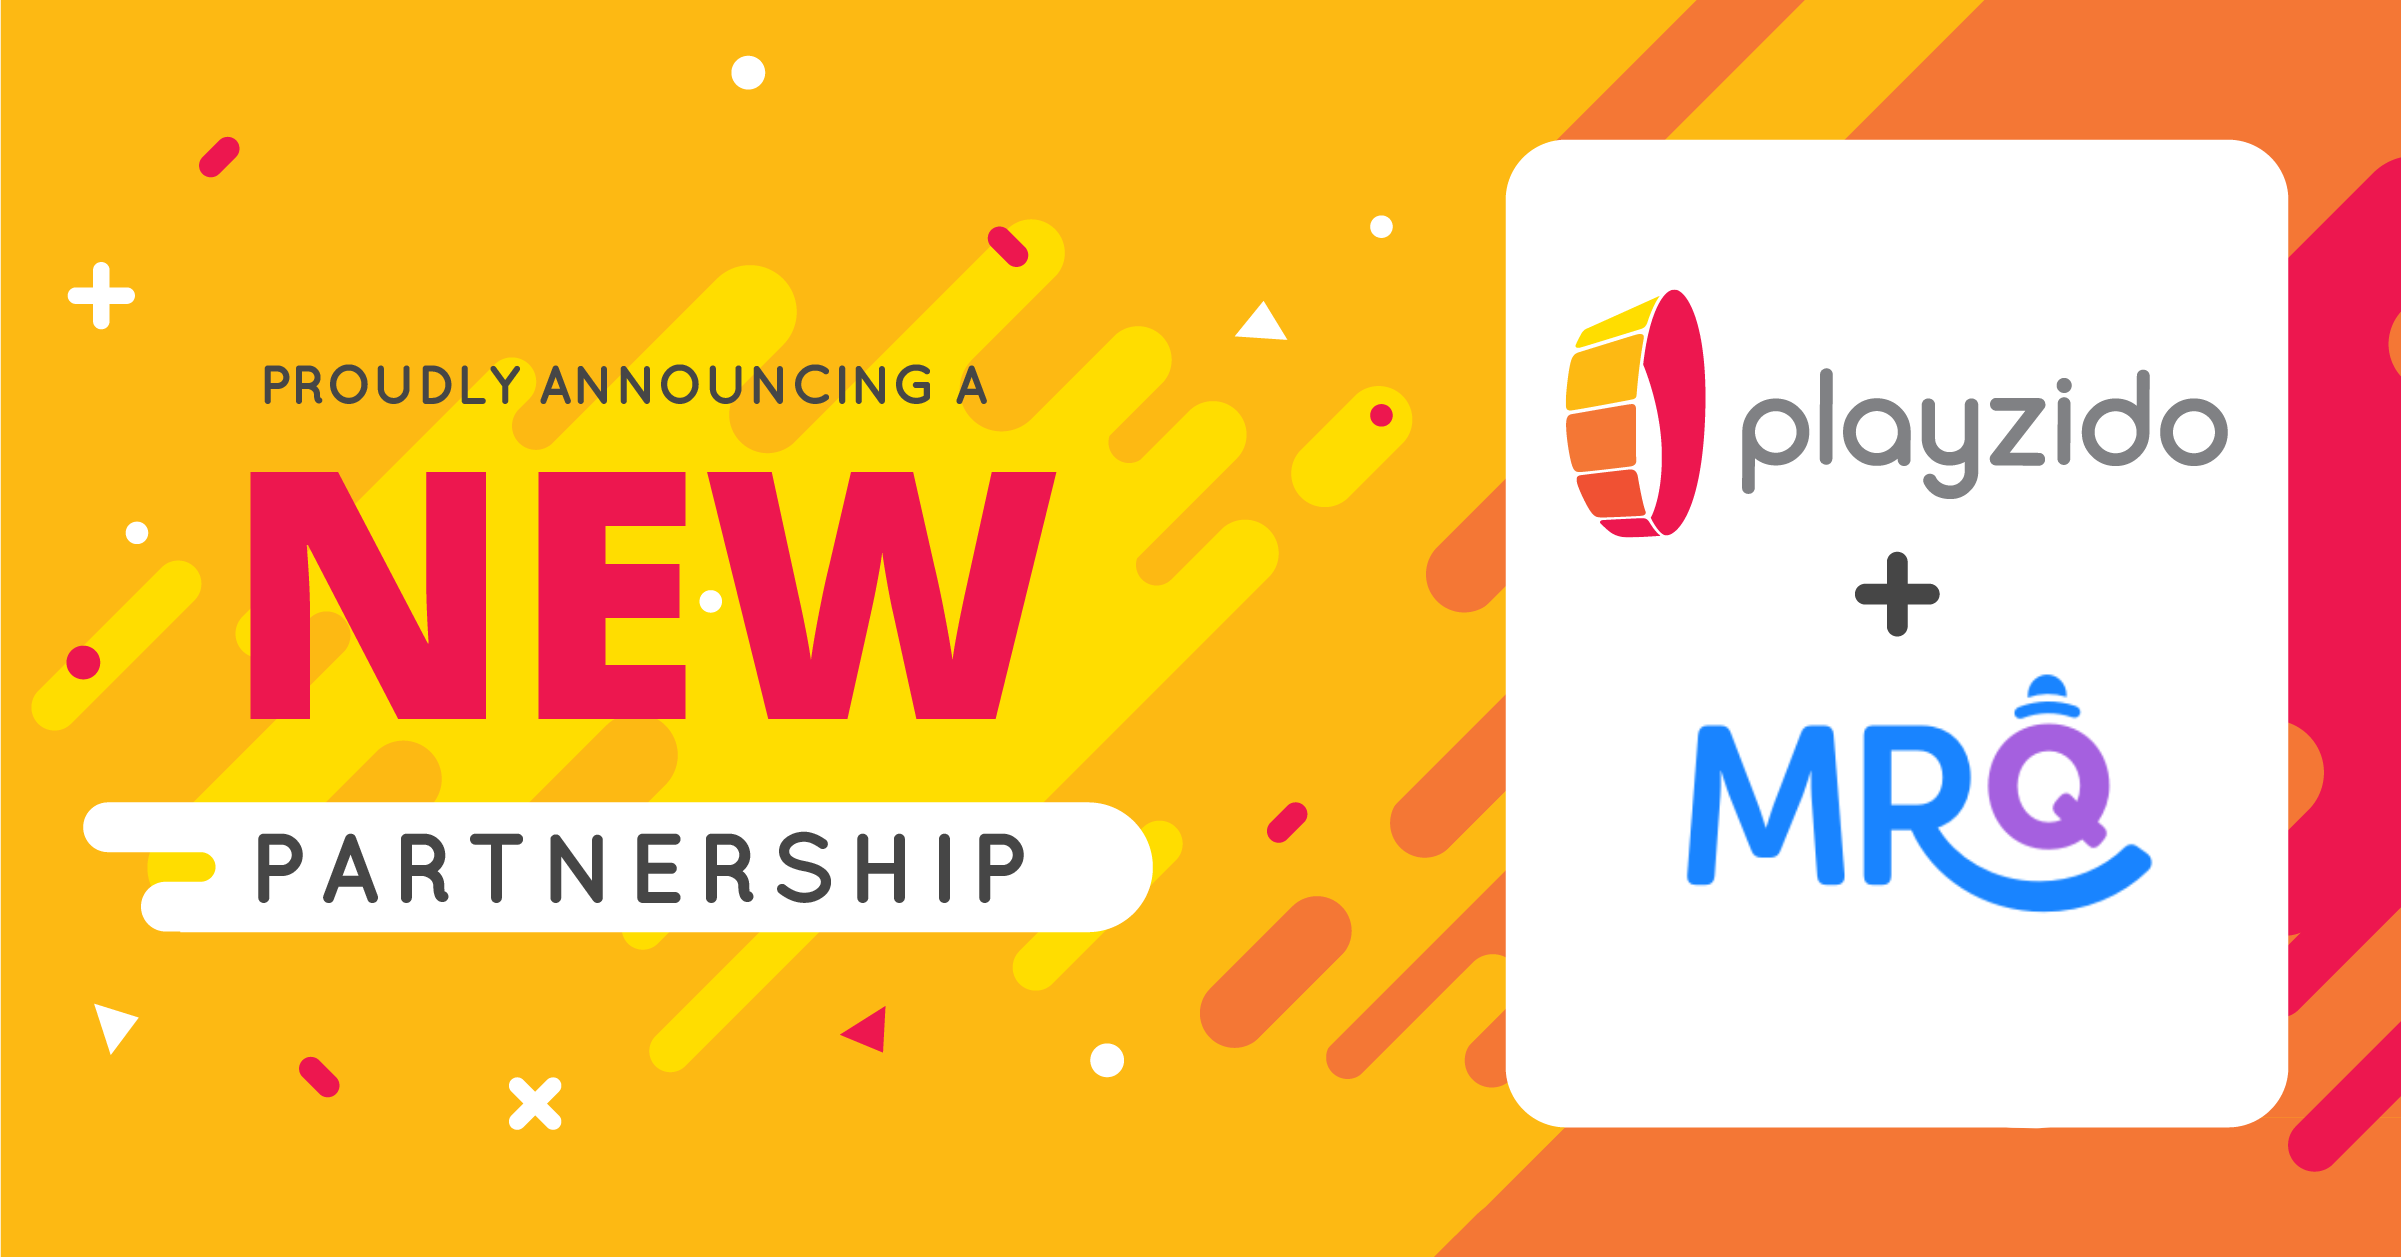 Industry rising stars Playzido and MrQ announce partnership